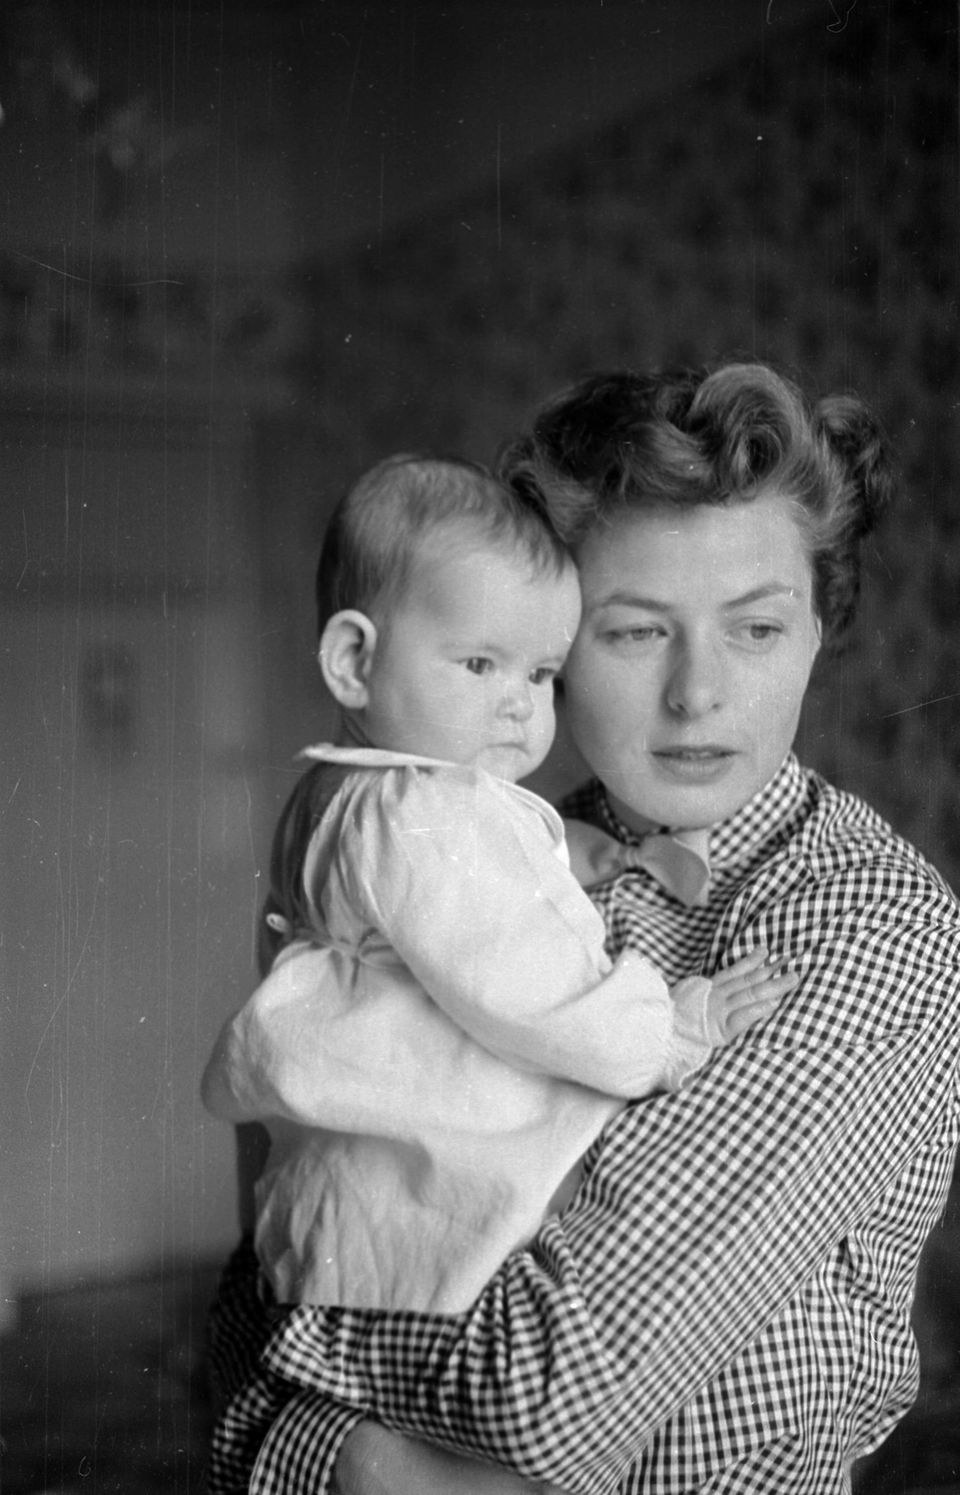 Pictured with her mother, Ingrid Bergman.